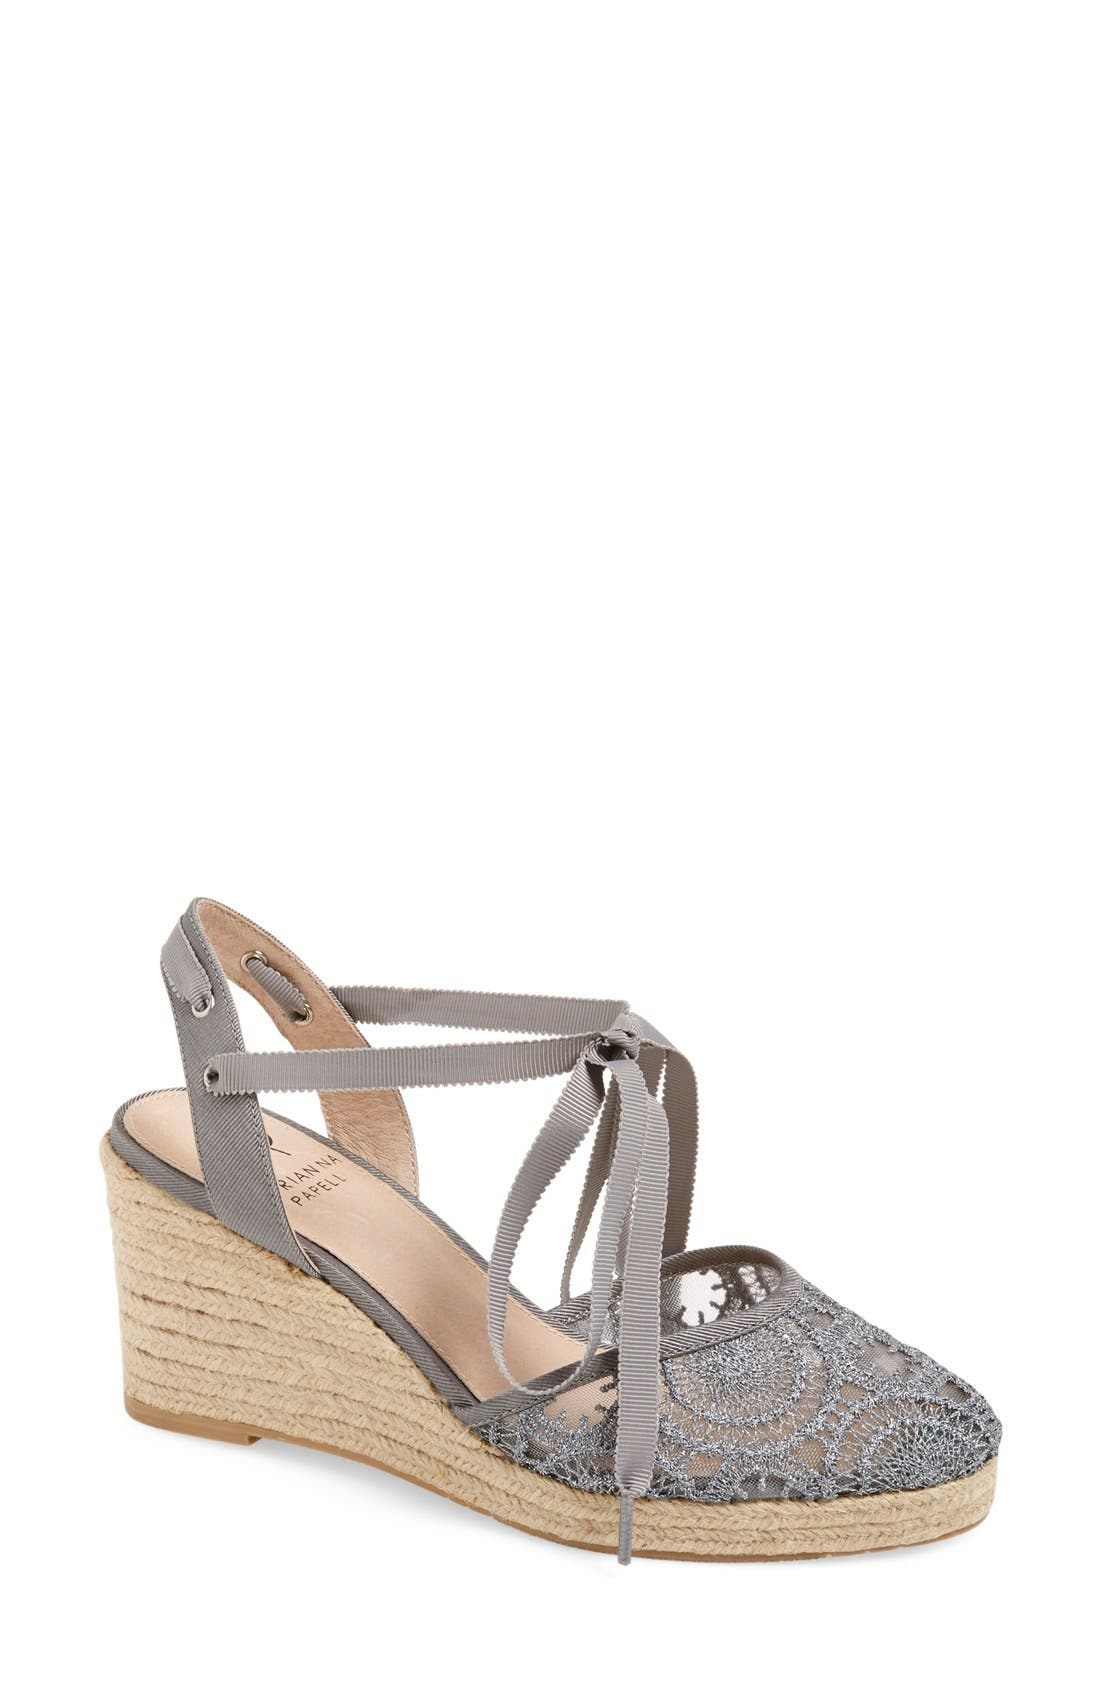 Adrianna Papell 'Penny' Sandal (Women)